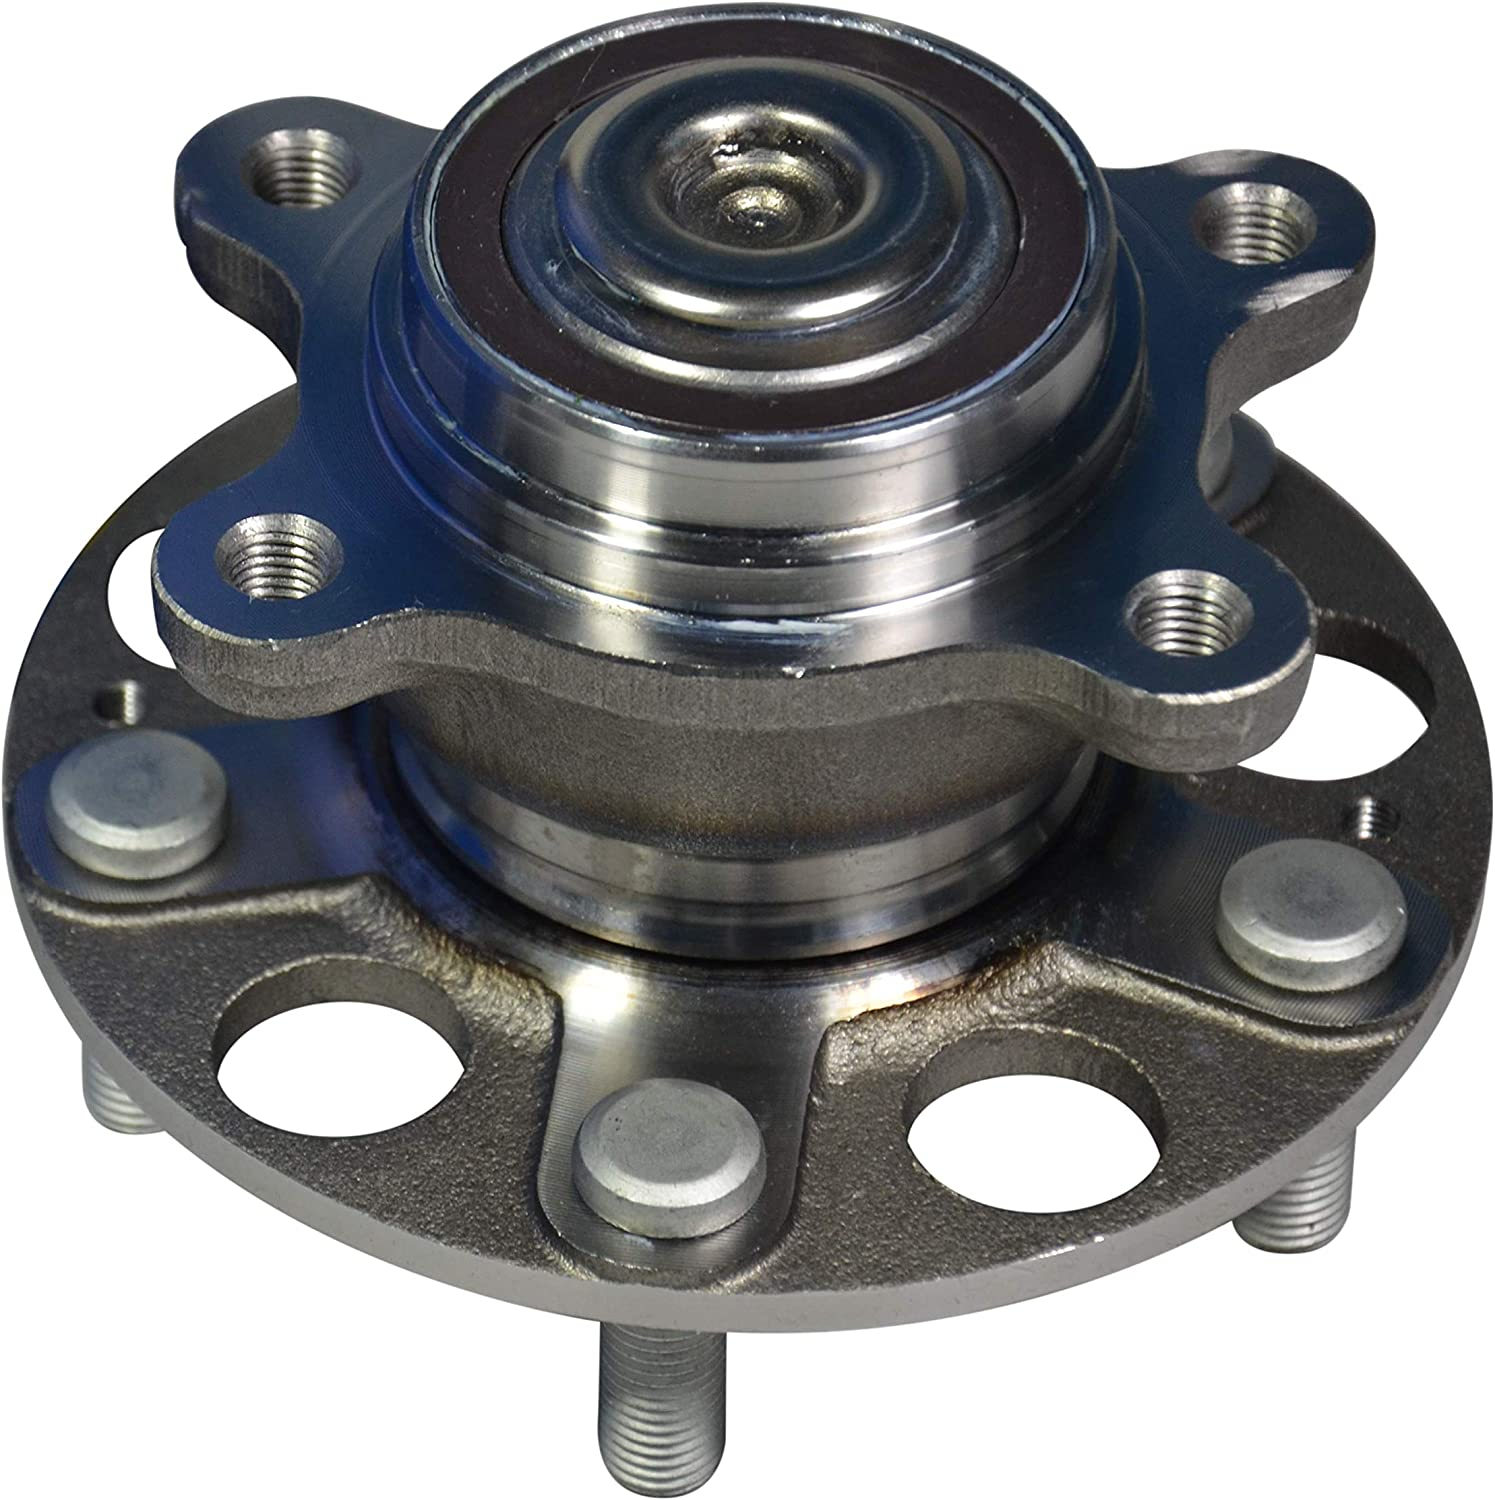 GSP Max 86% OFF 363257 Wheel Bearing and Hub Left Assembly Sales of SALE items from new works - Rear or Right